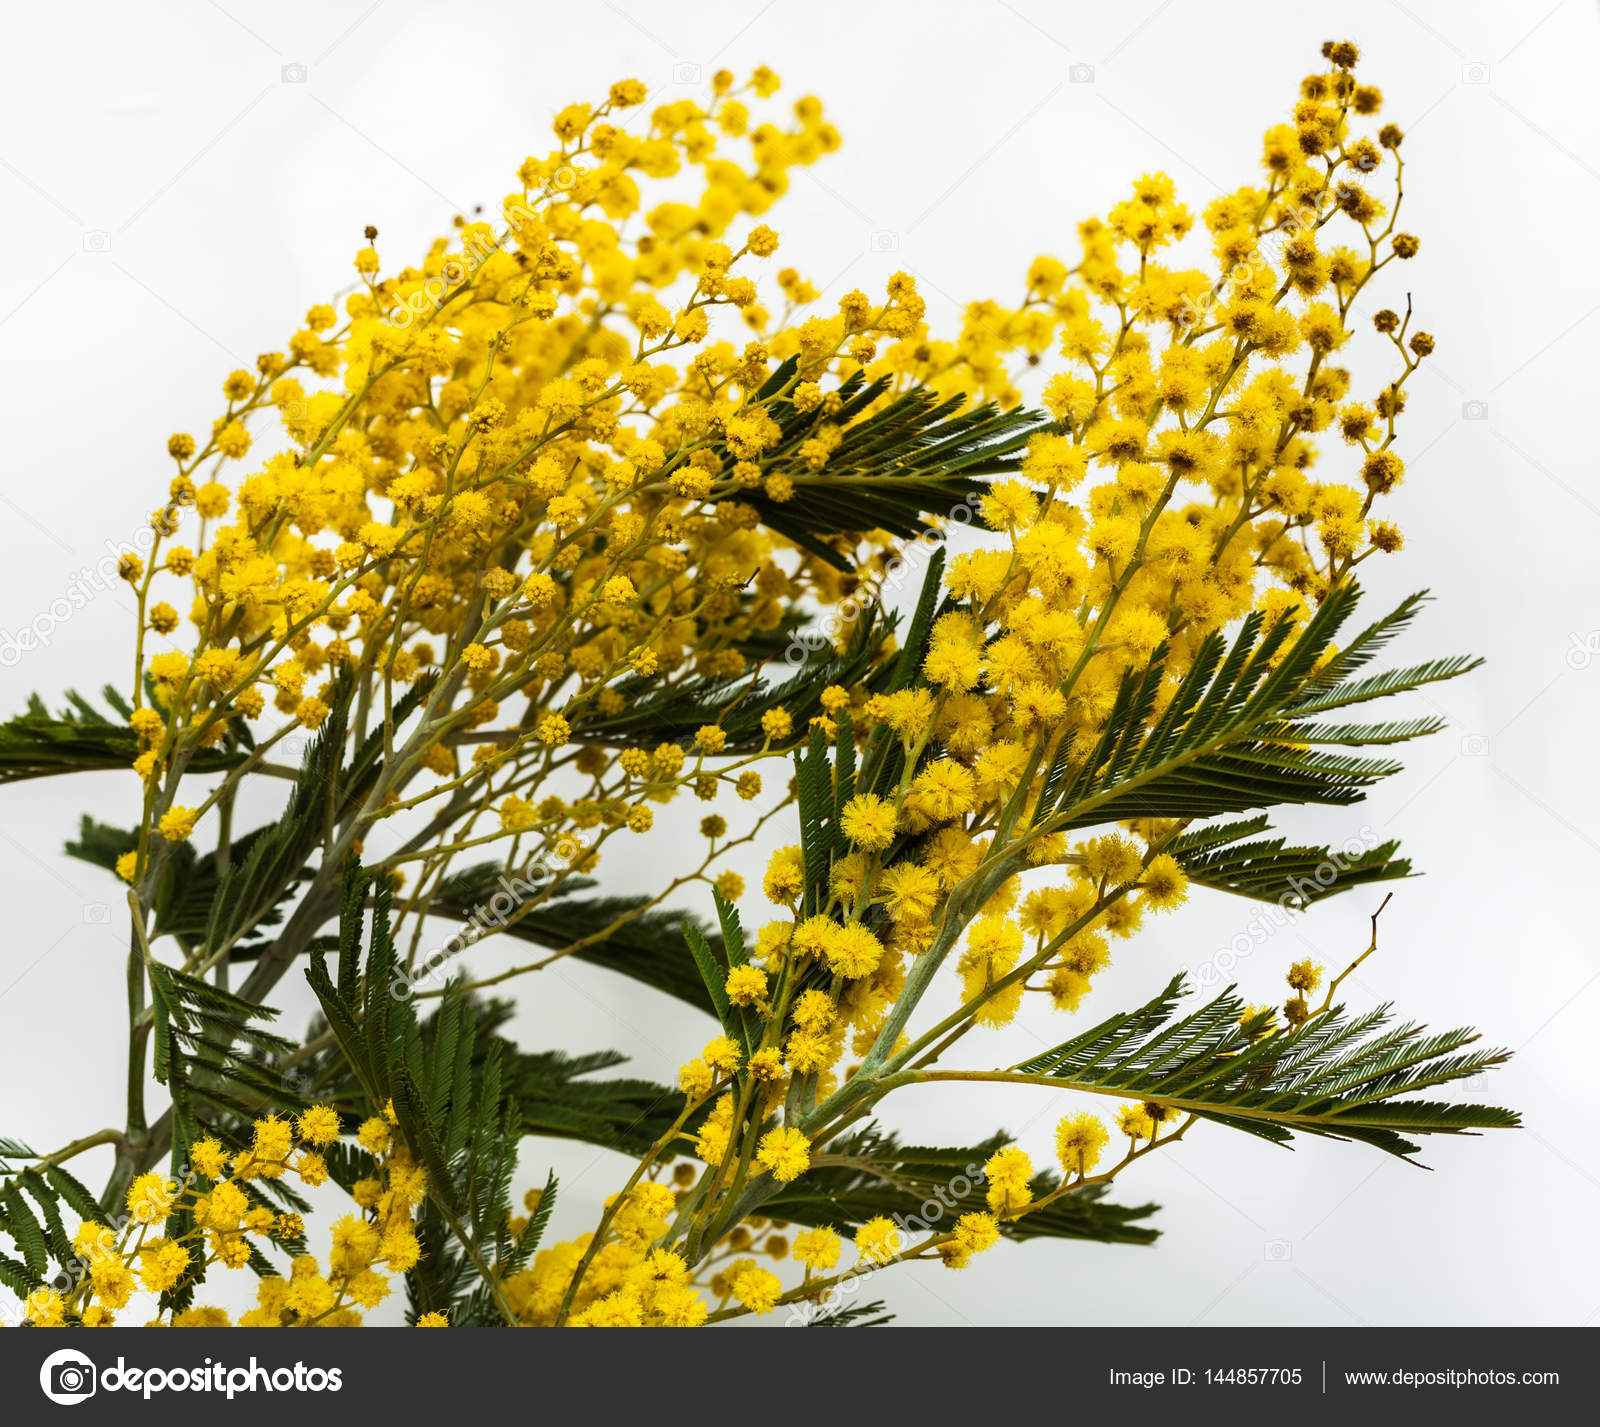 Fine yellow flowers mimosa acacia dealbata stock photo fine yellow flowers mimosa acacia dealbata beautiful spring flowers on a white background yellow inflorescences and green leaves close up mightylinksfo